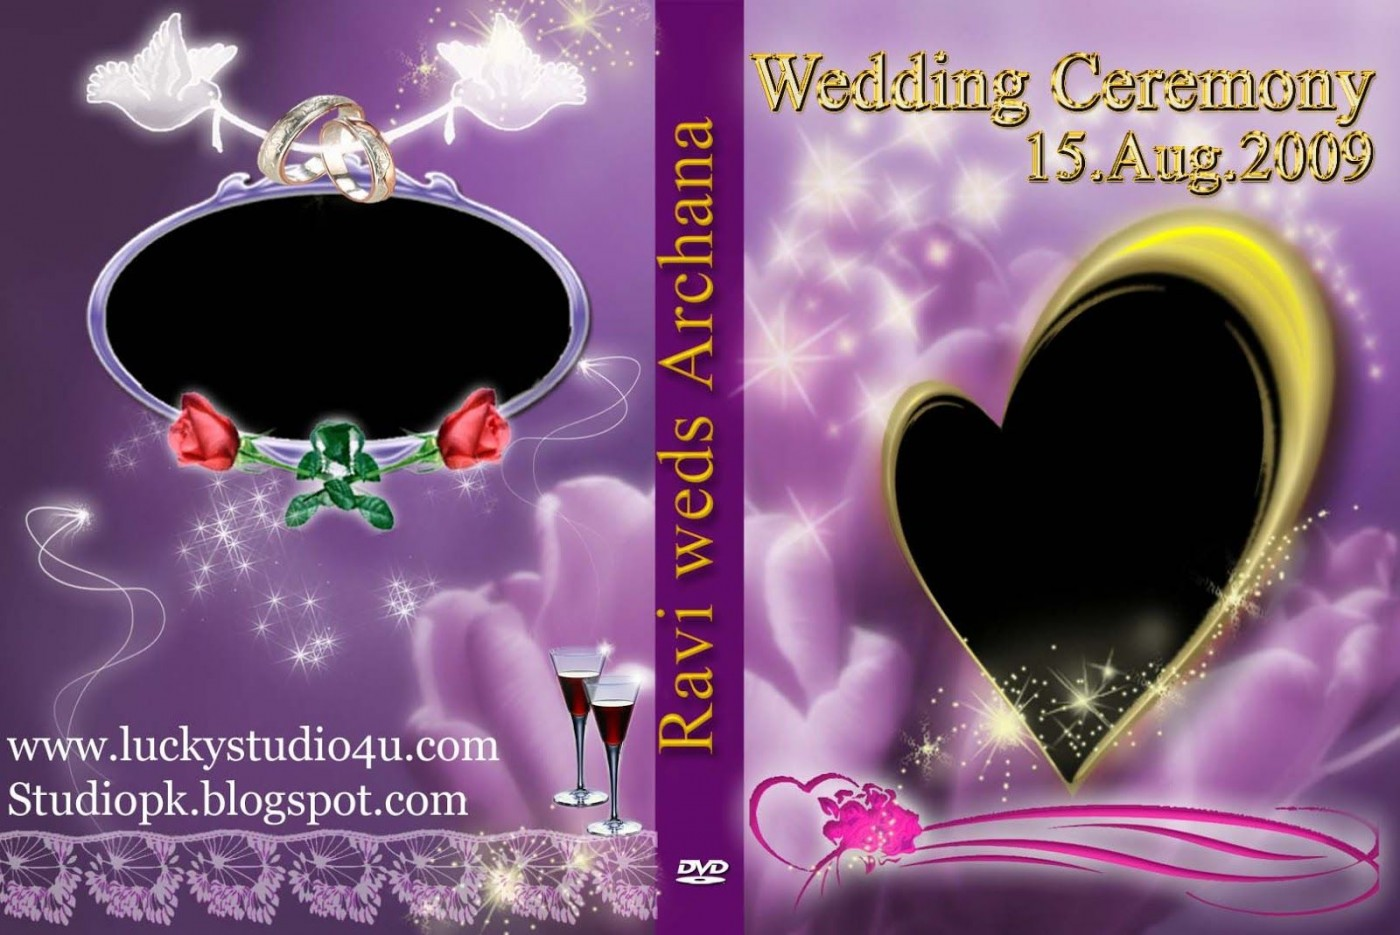 006 Fascinating Wedding Cd Cover Design Template Free Download Picture 1400